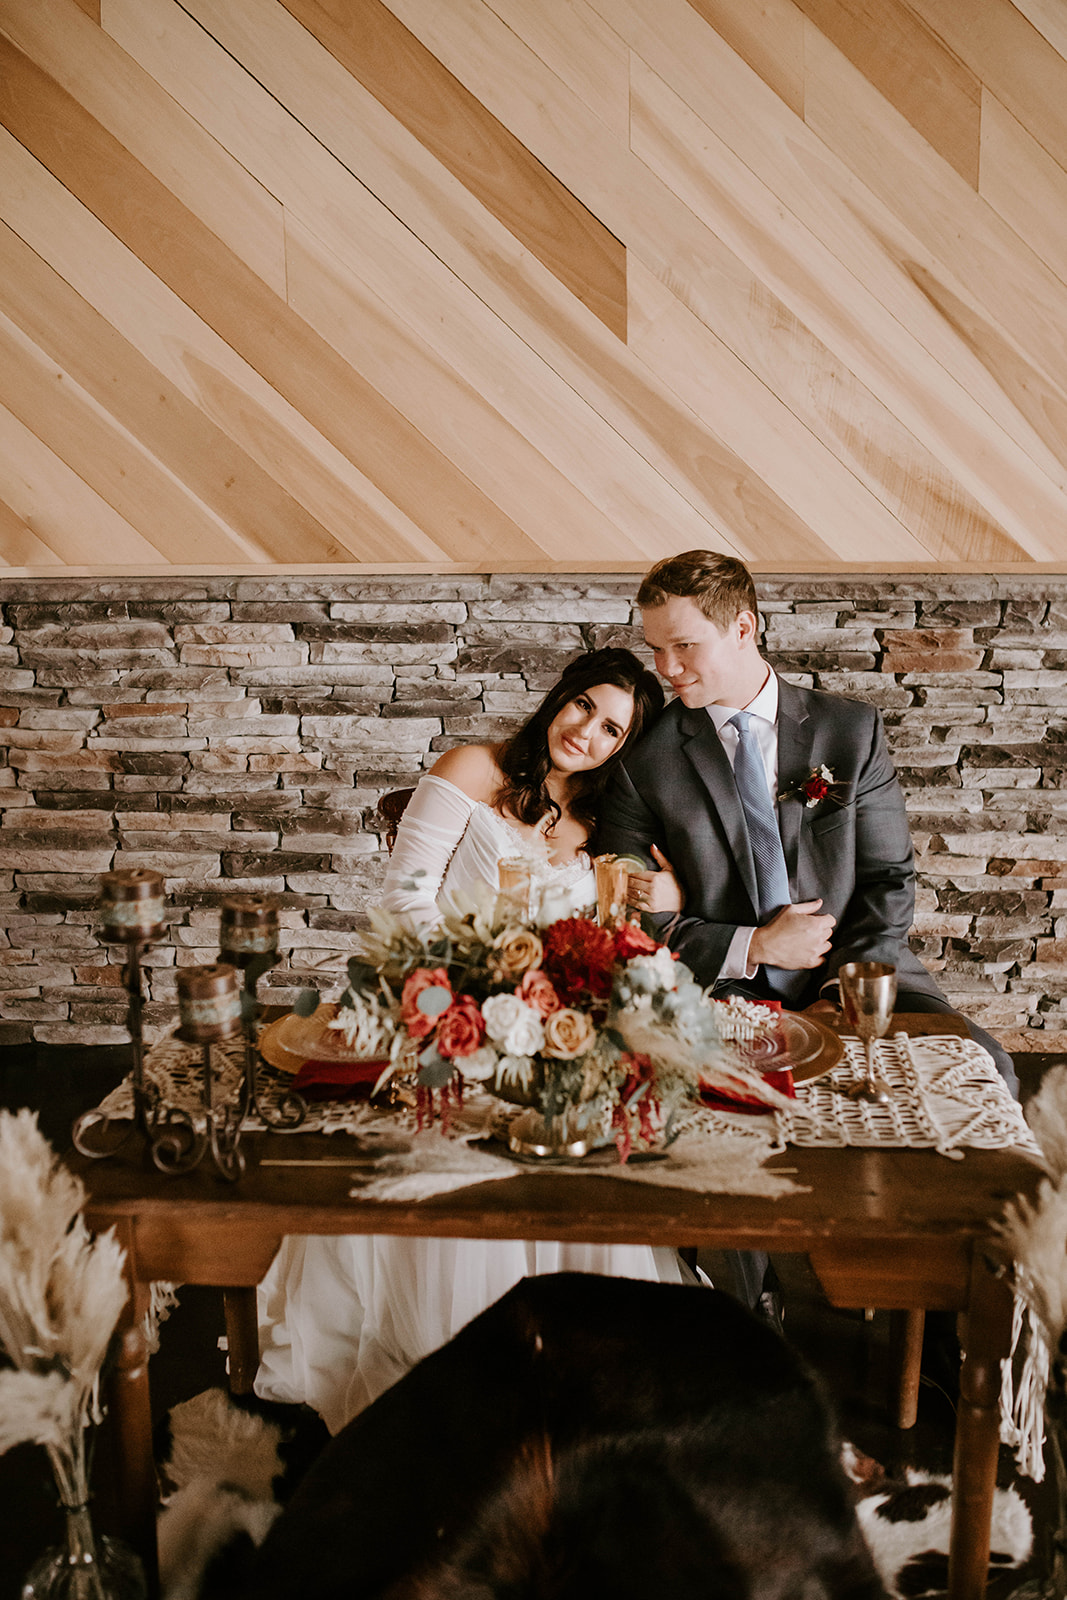 Rustic wedding inspiration: Surprise Vow Renewal by Tara Winstead Photography featured on Nashville Bride Guide